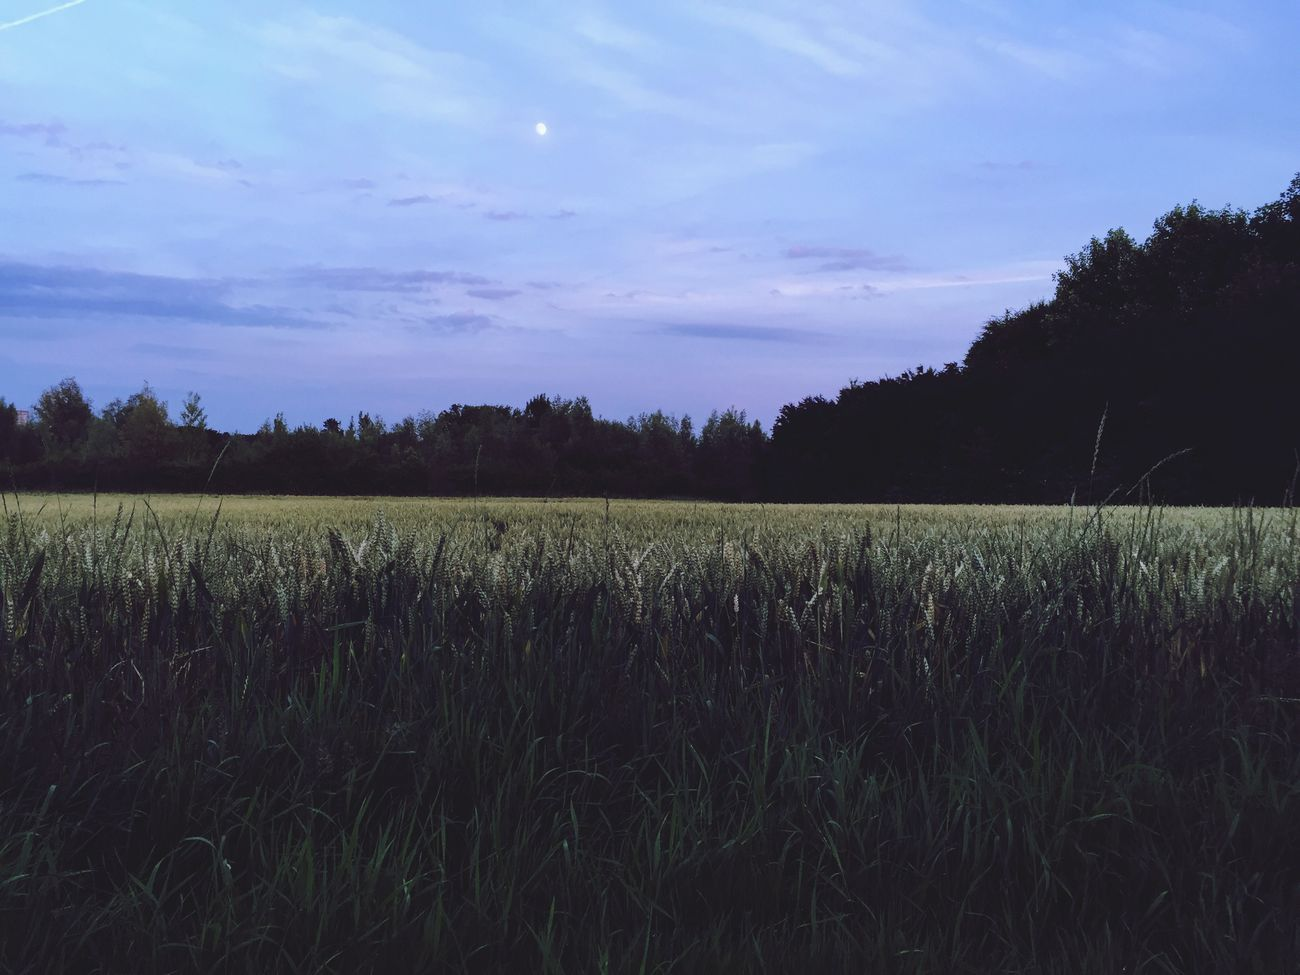 Nighttime Nighttime In The Neighborhood Night Moon Fields Of Gold